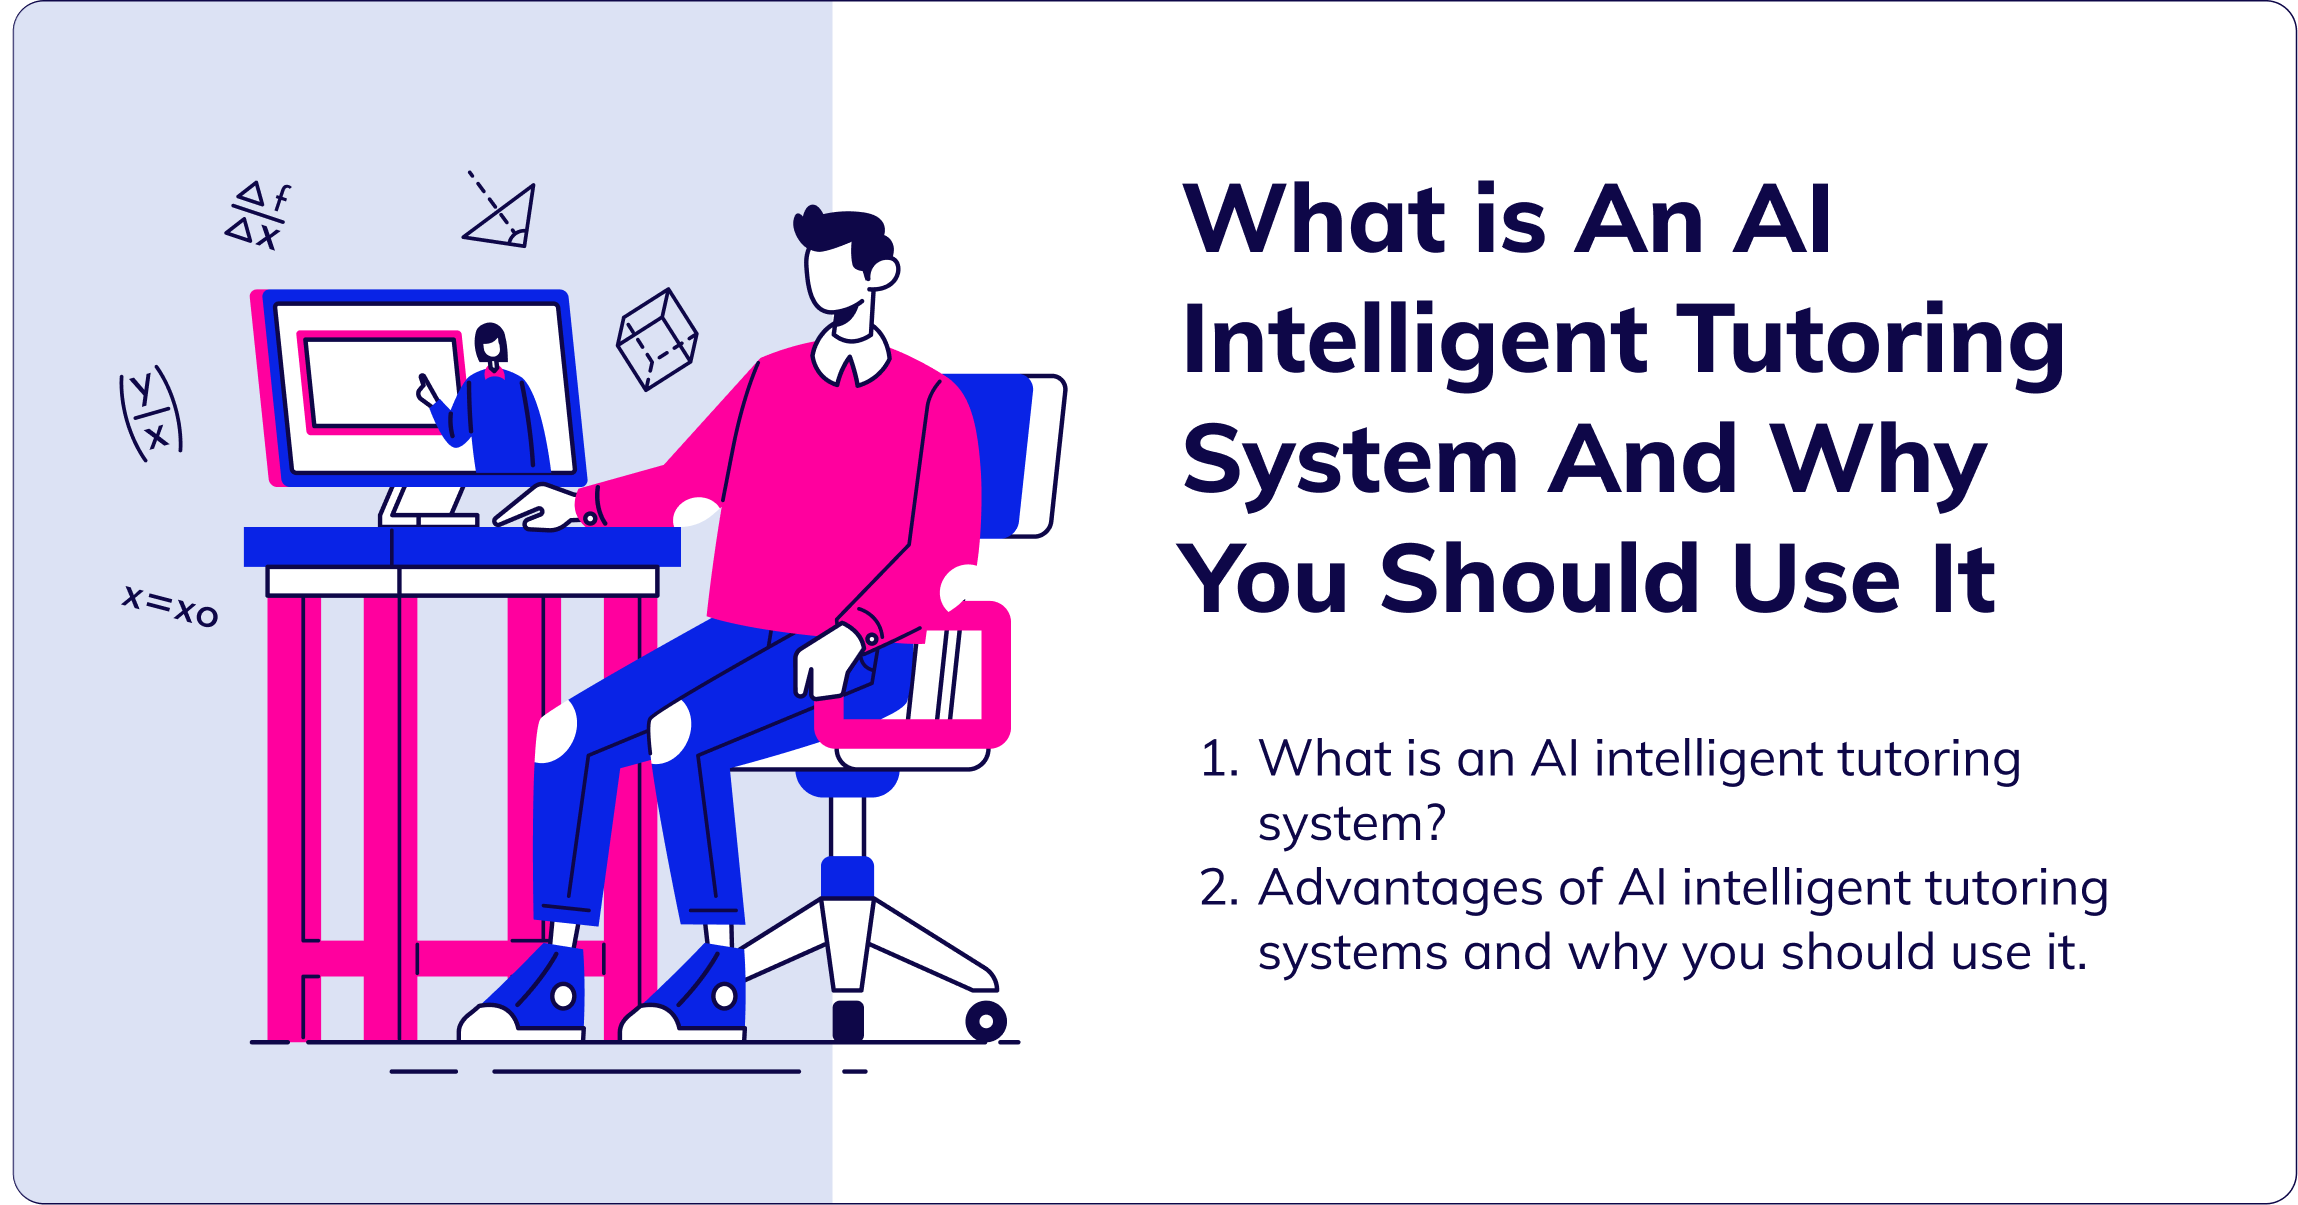 what-is-an-ai-intelligent-tutoring-system-and-why-you-should-use-it